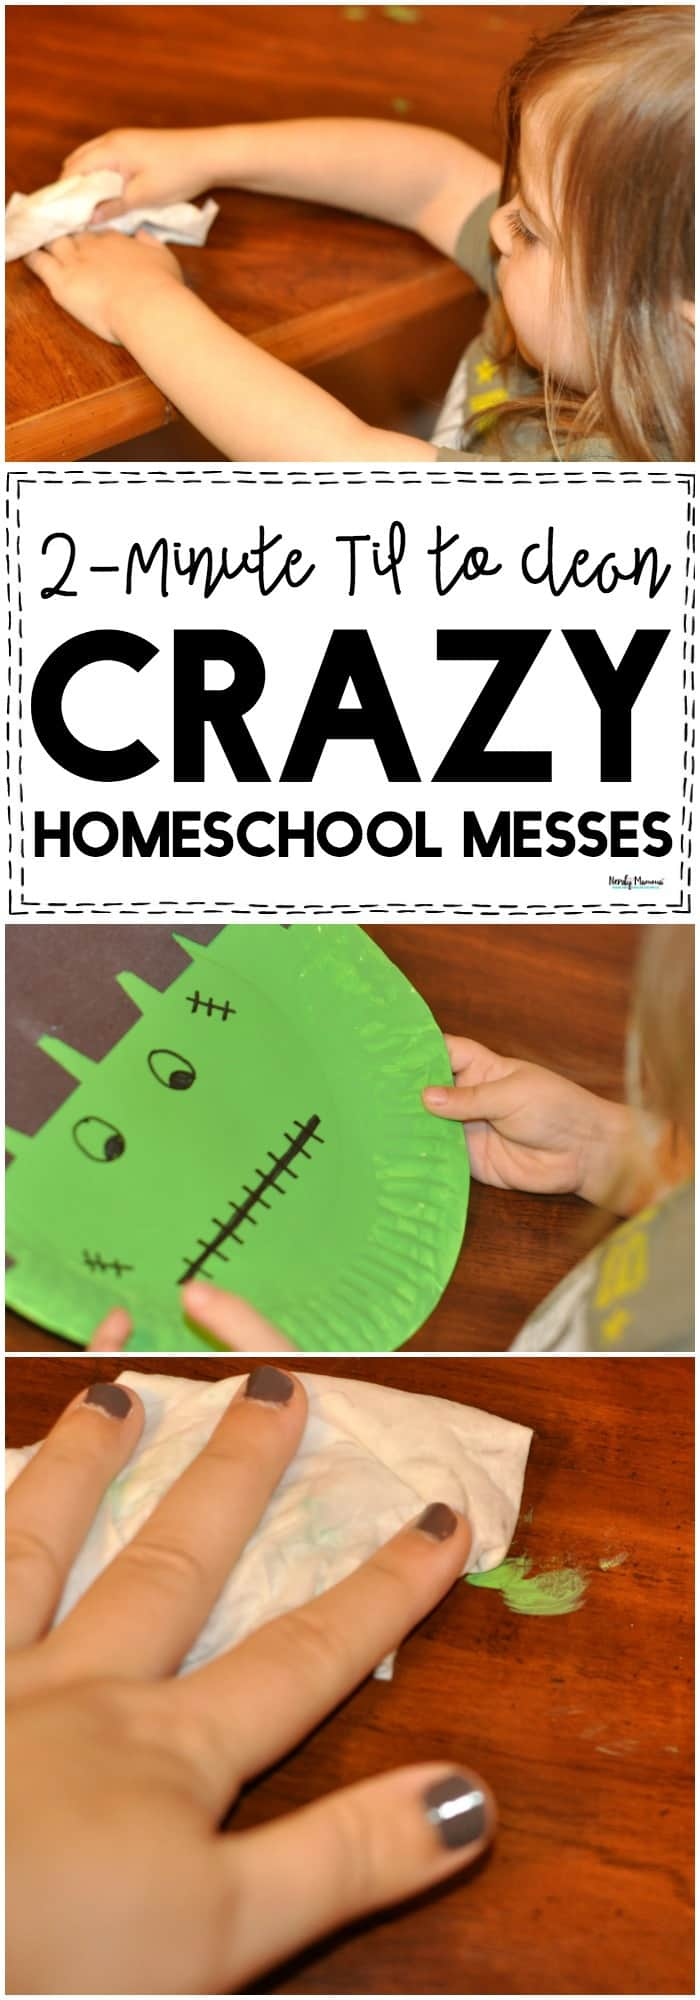 Check out this AMAZEBALLS 2-minute cleaning tip for crazy homeschool messes!